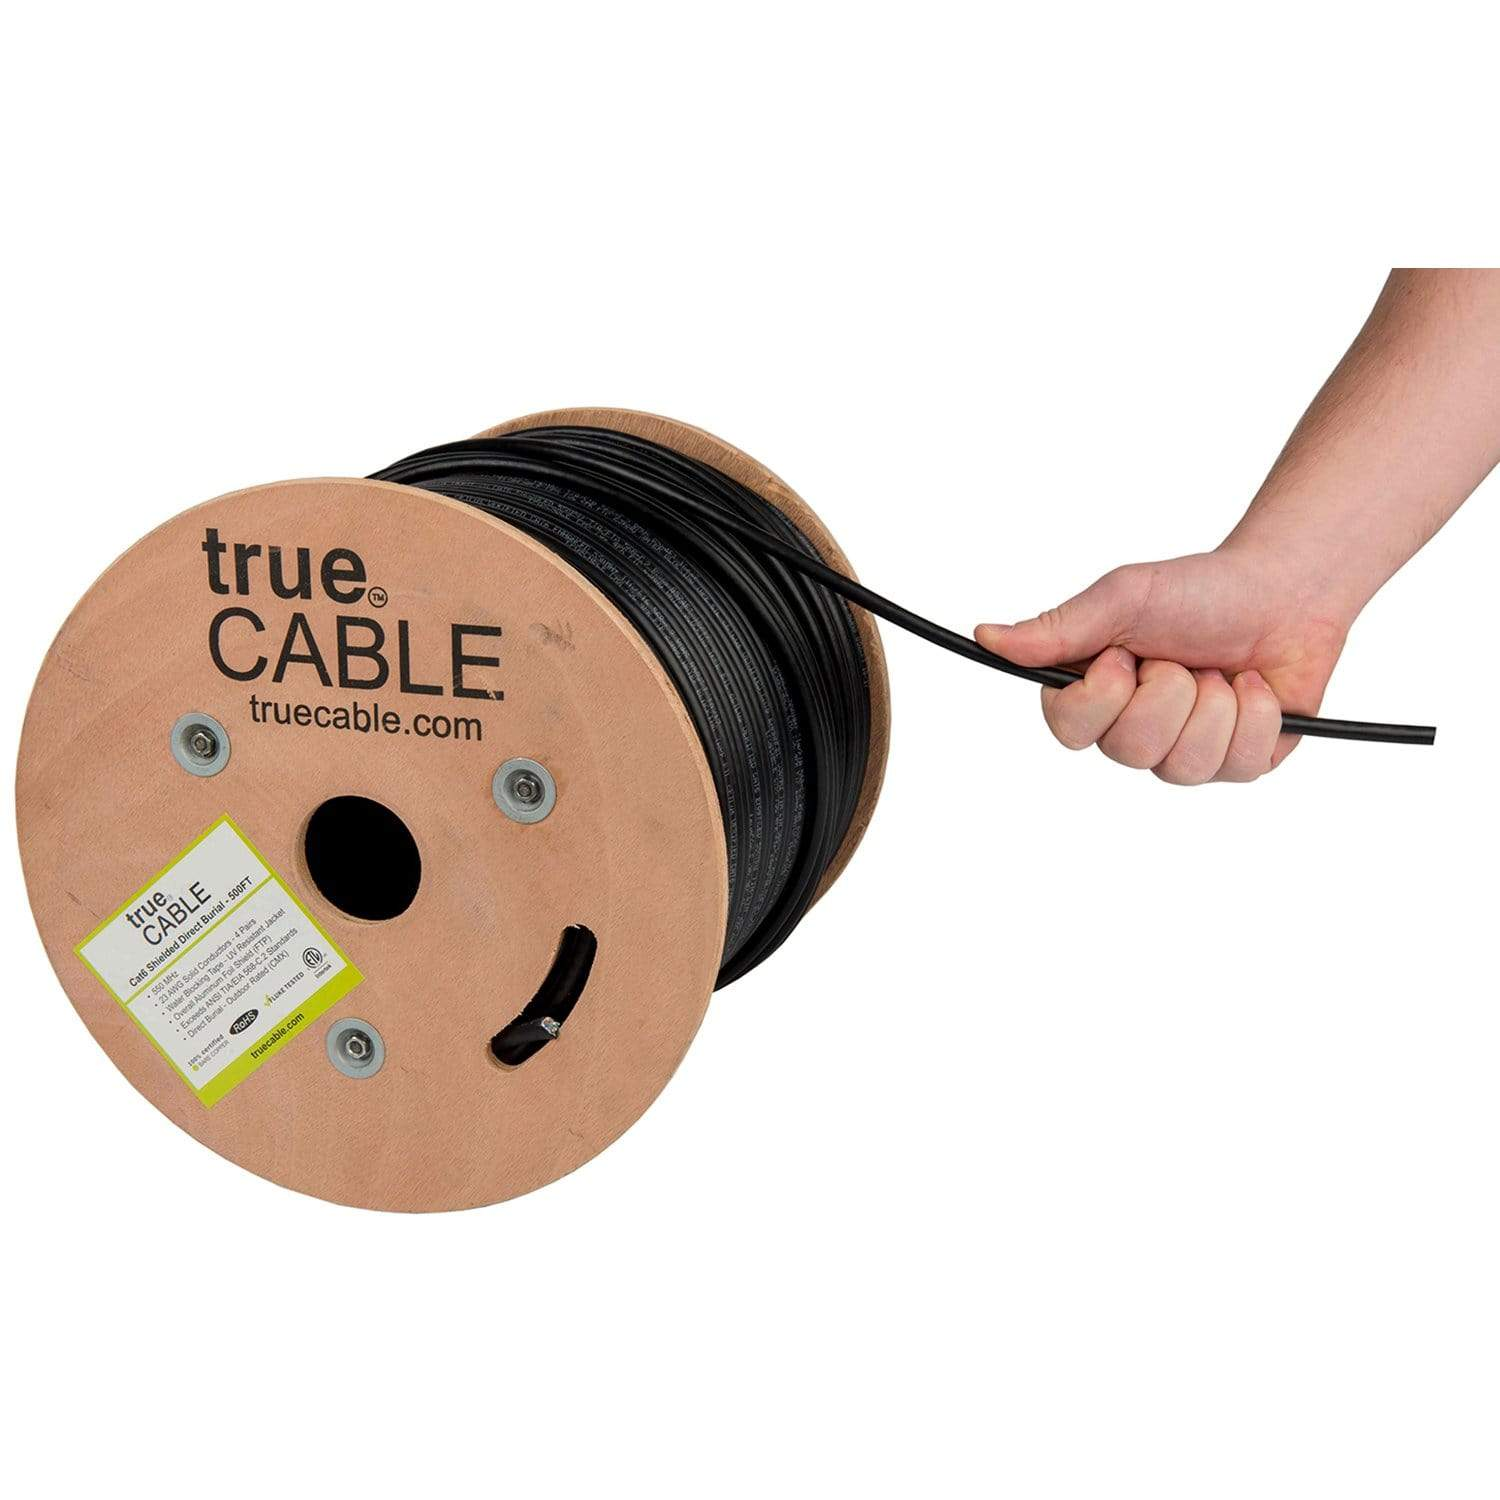 Cat6 Shielded Outdoor Cable Black 500ft trueCABLE Hand Pulling